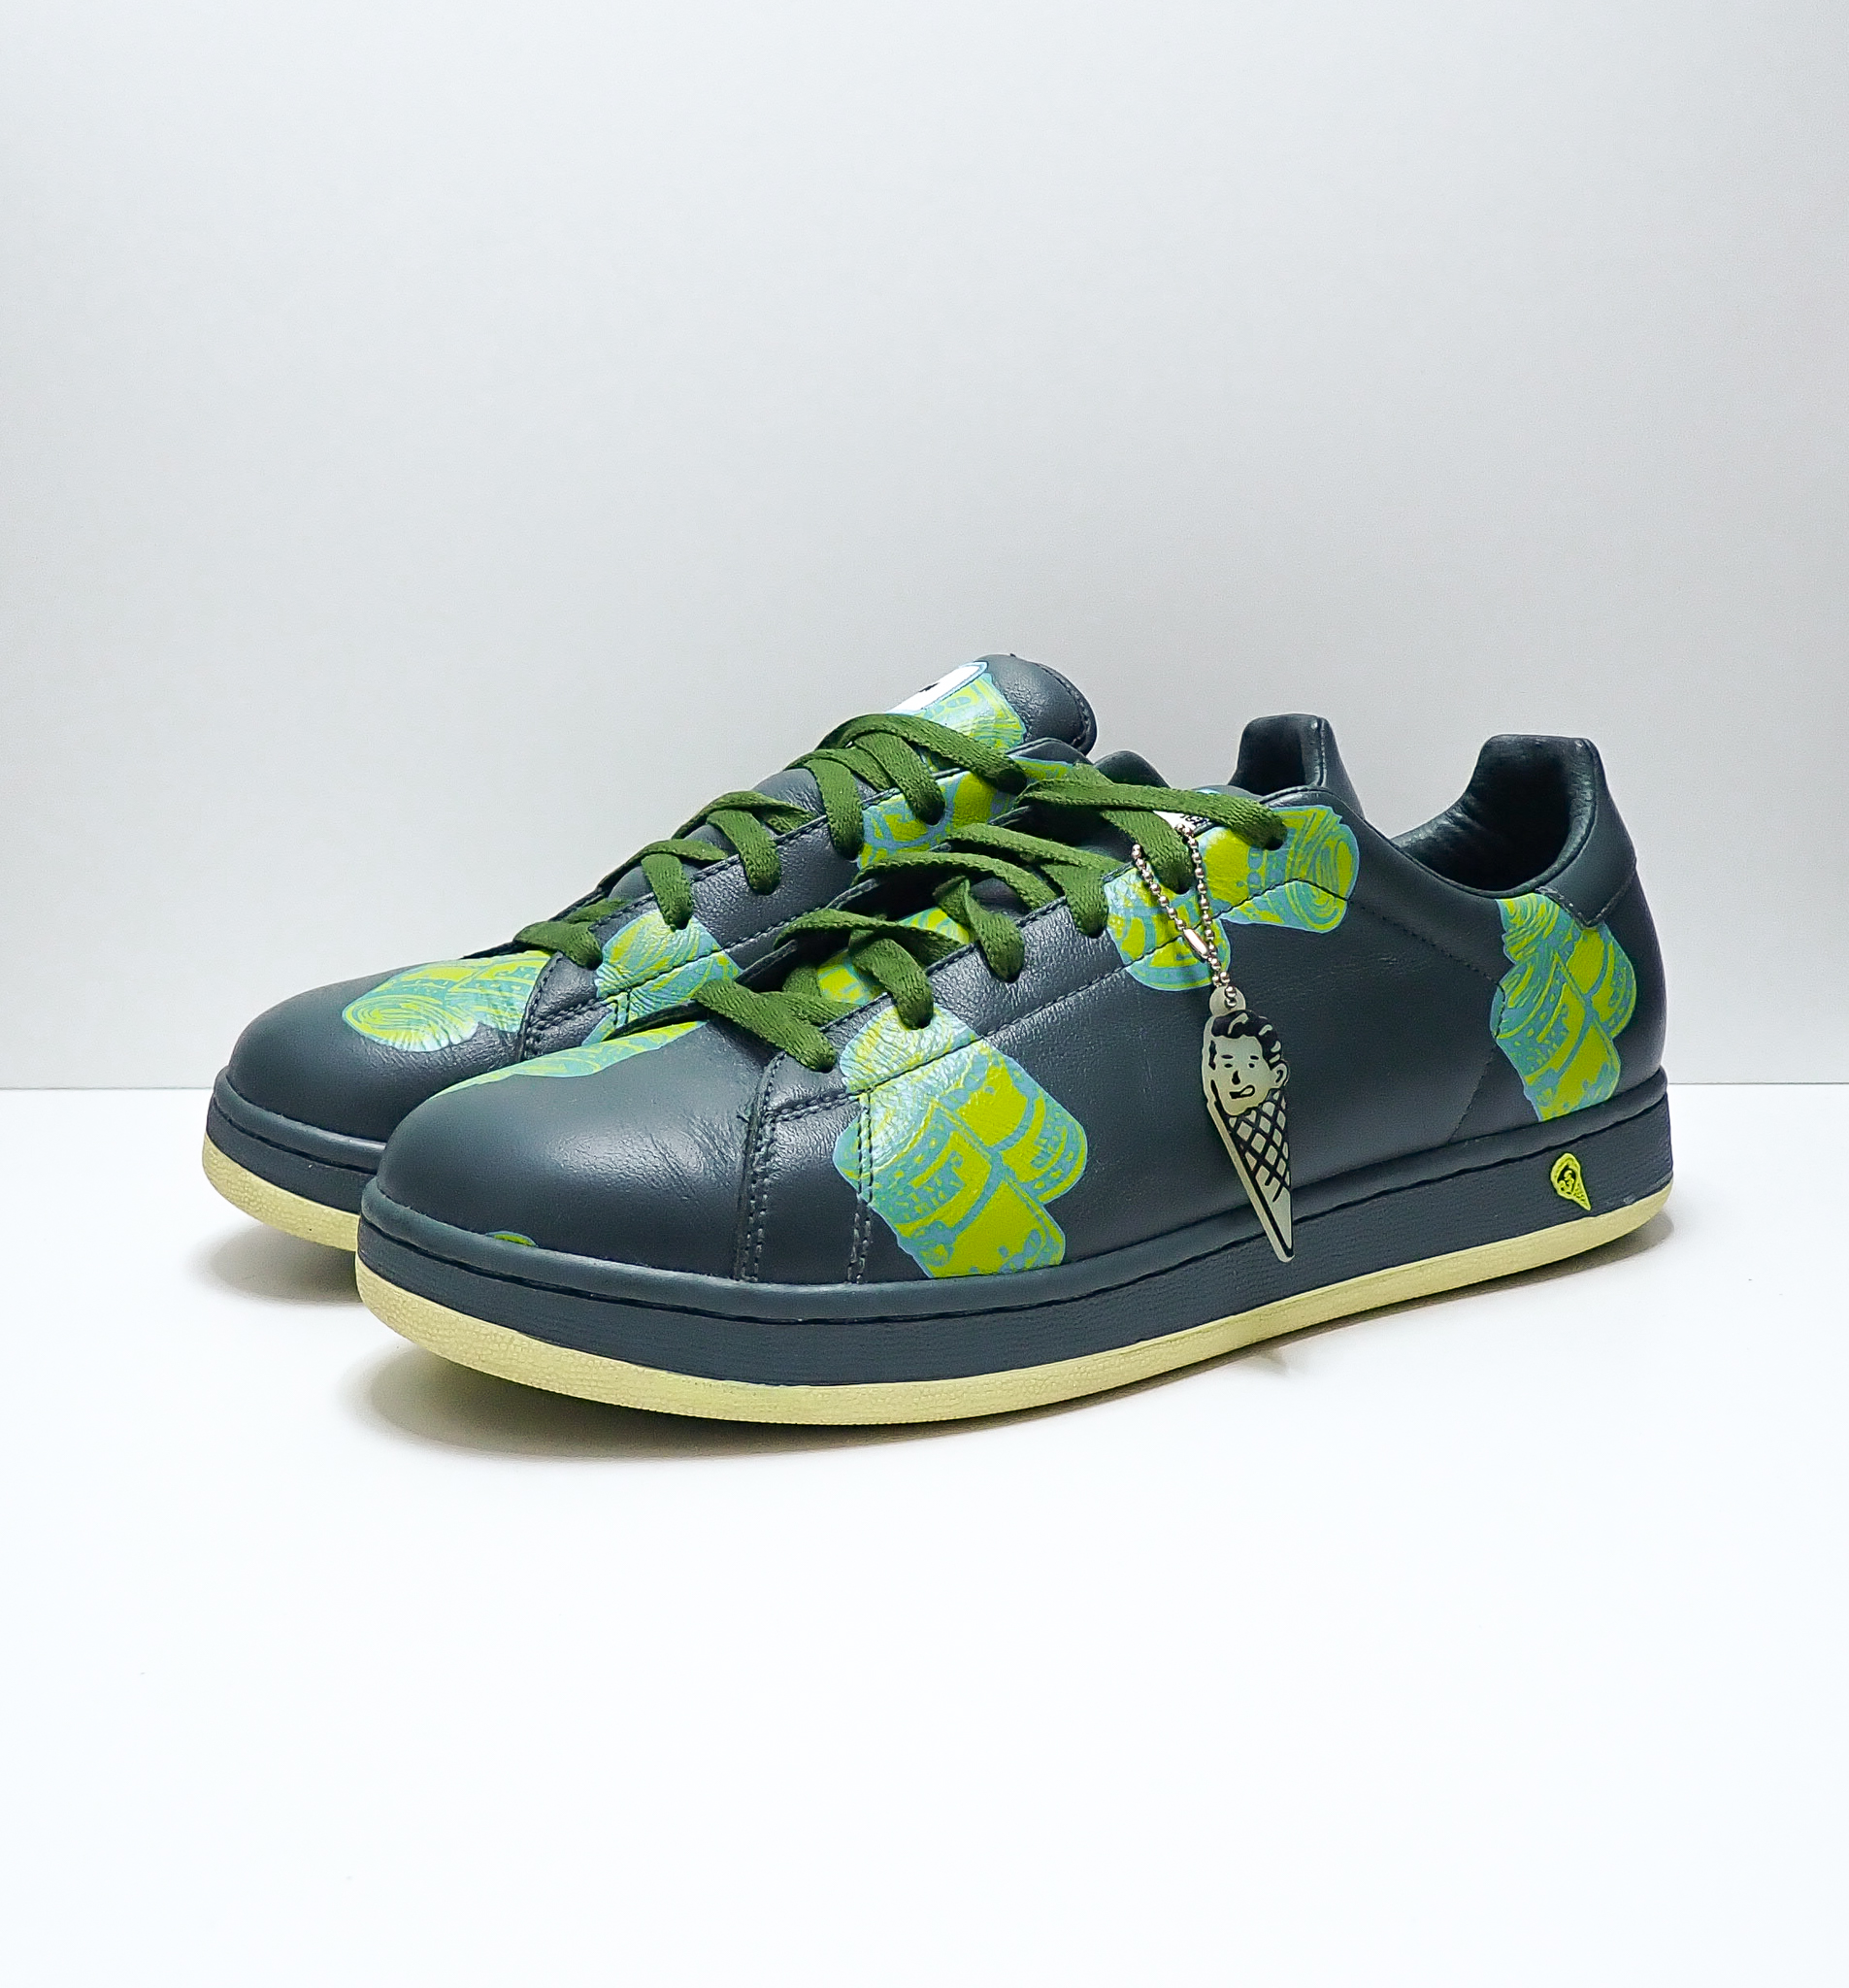 Reebok Ice Cream Low Green Money Roll